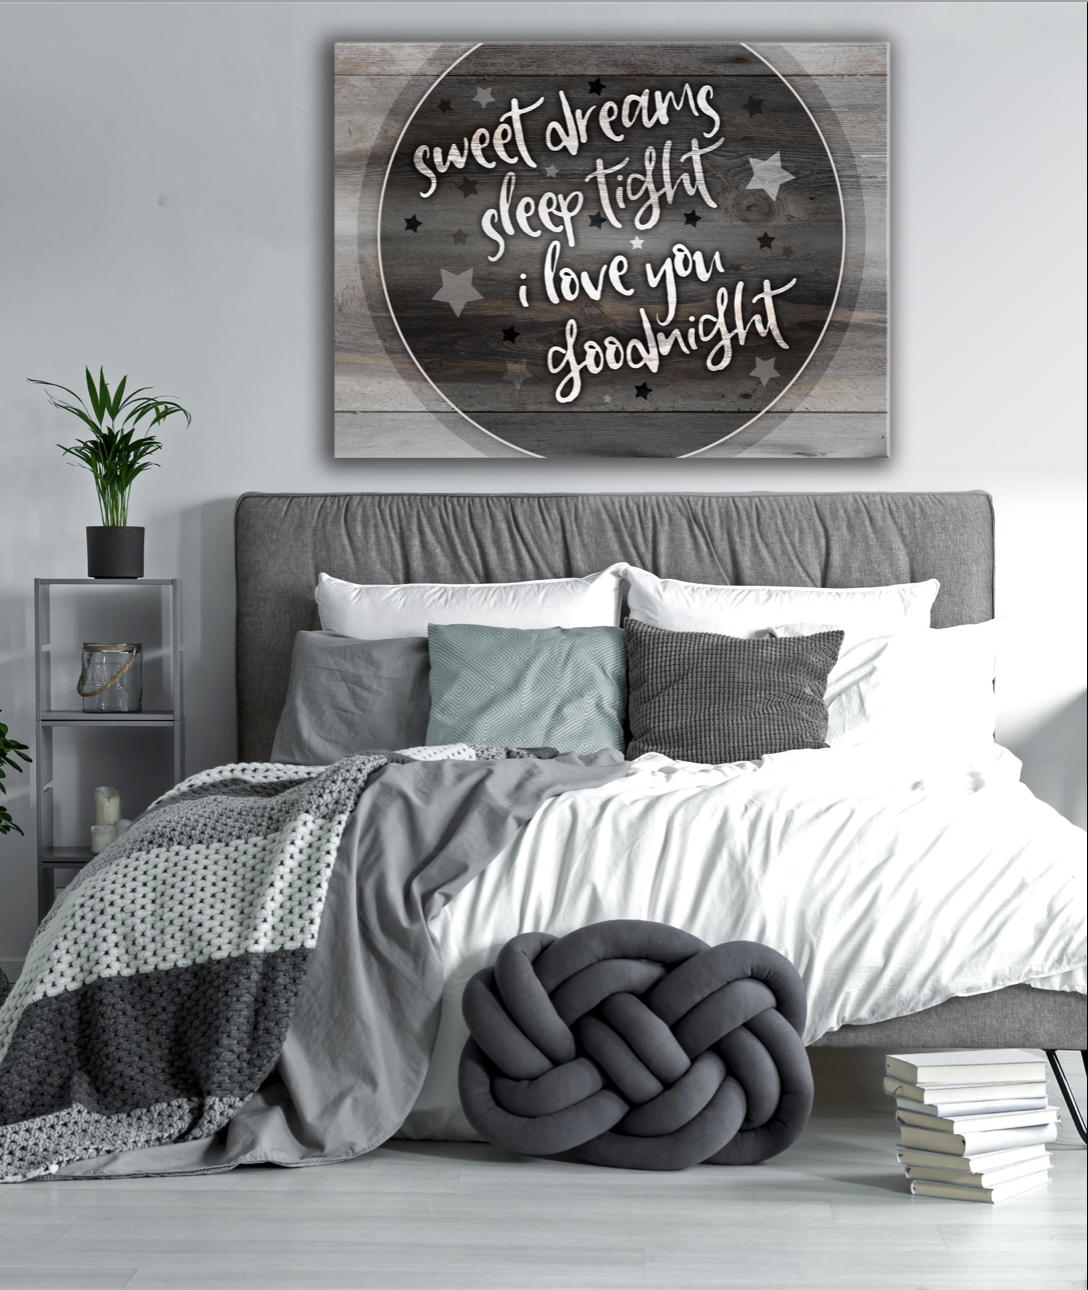 Bedroom Wall Art: I Love You Goodnight (Wood Frame Ready To Hang)